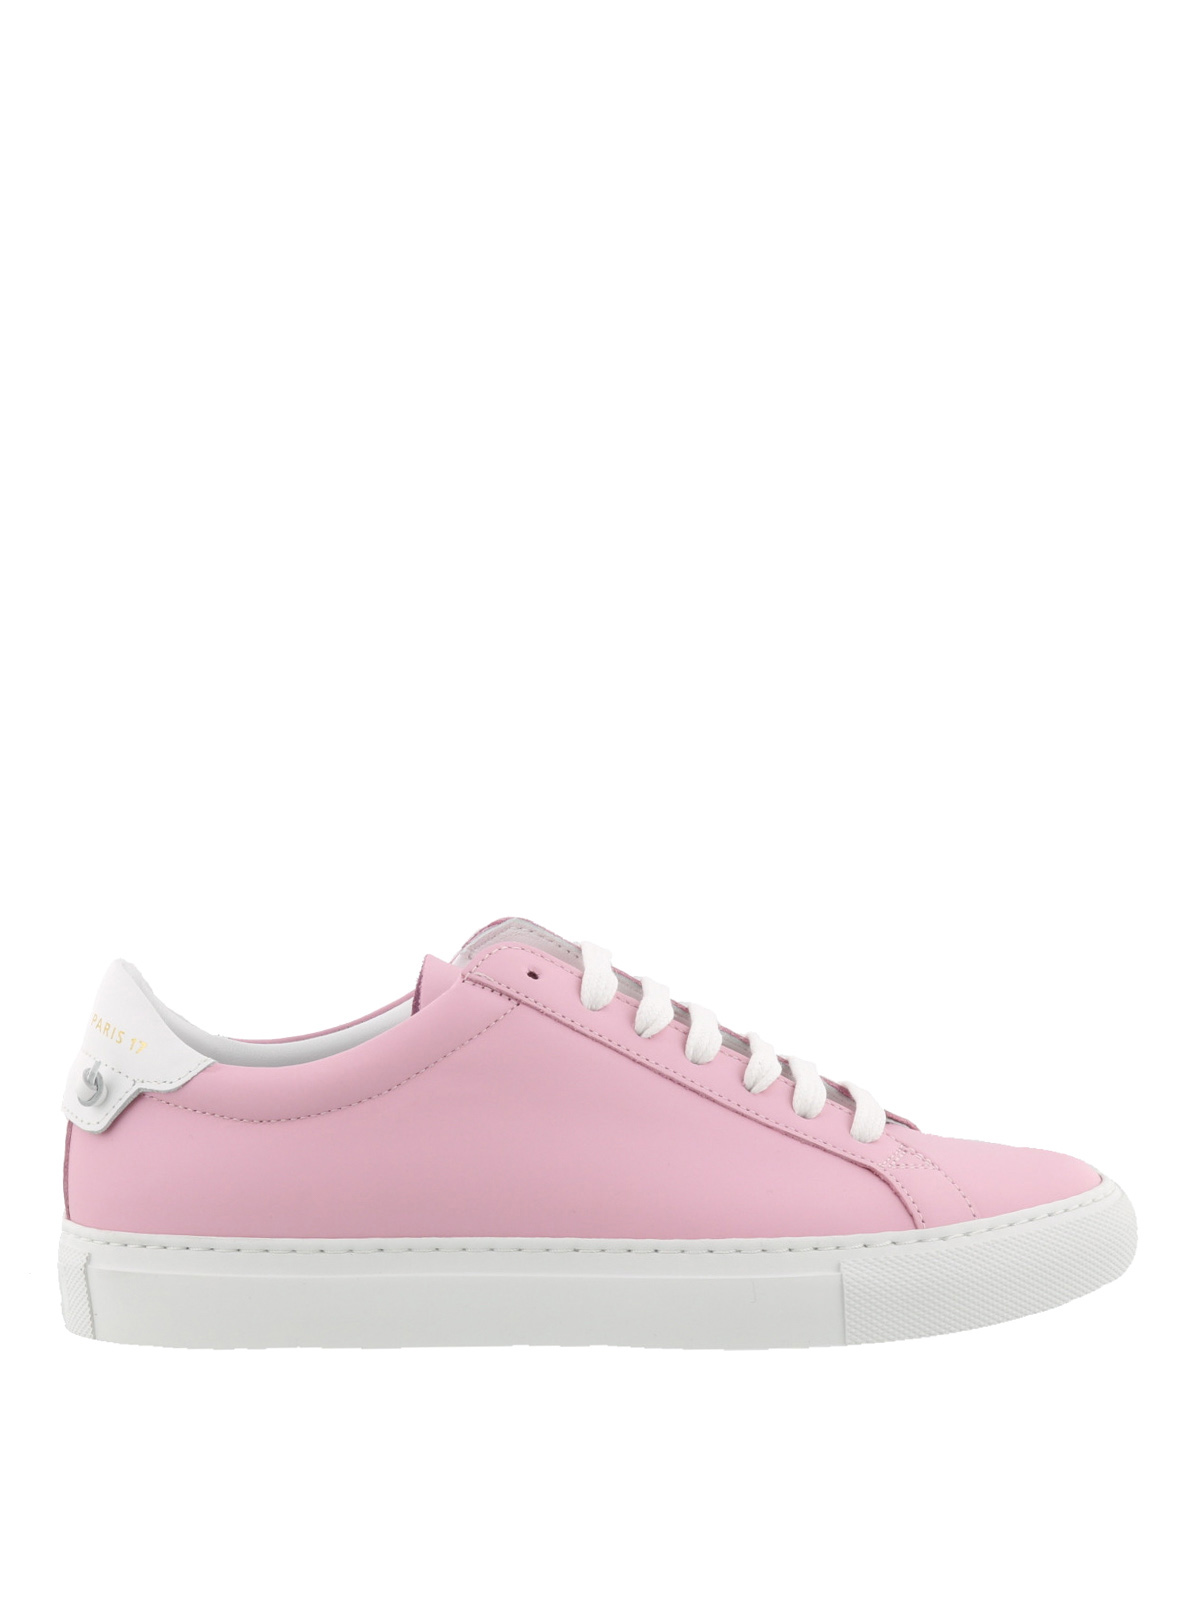 Givenchy - Knots pink leather sneakers